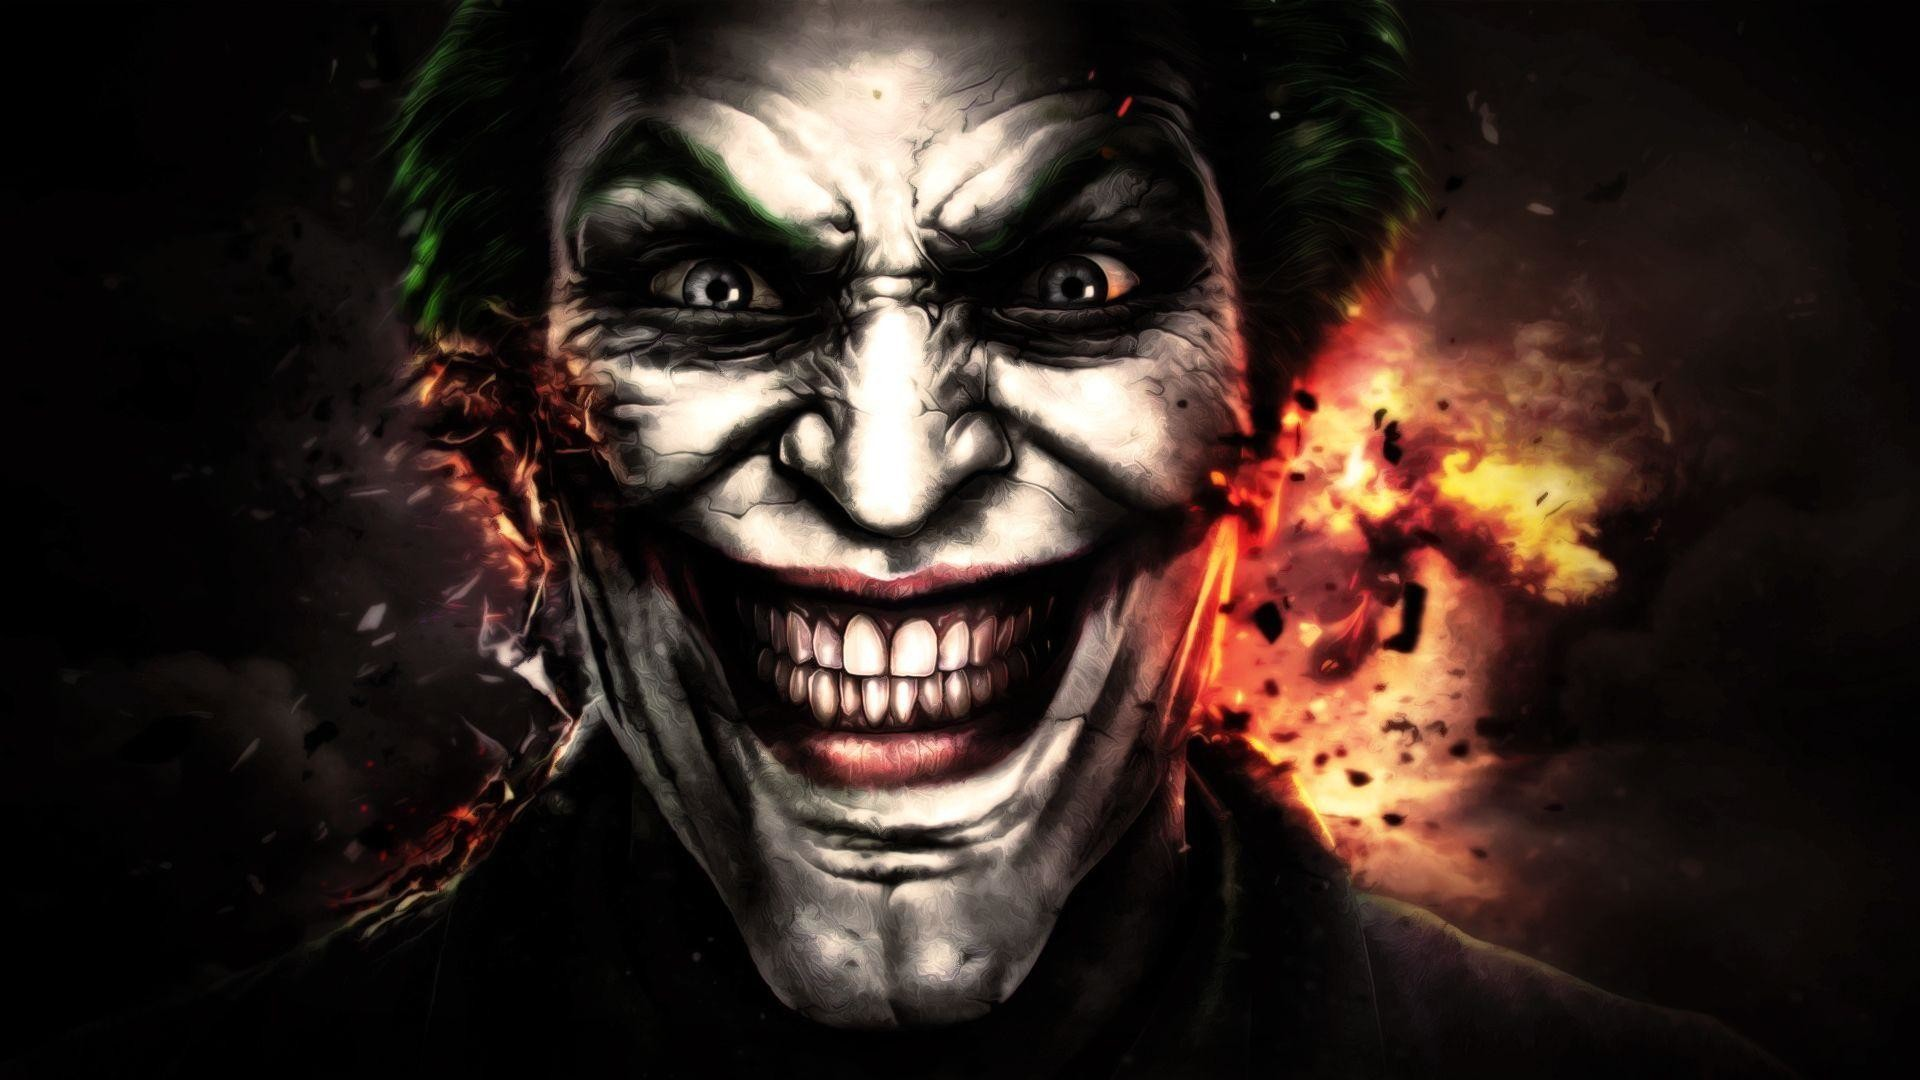 Res: 1920x1080, Wallpapers Movie Scary Face Joker